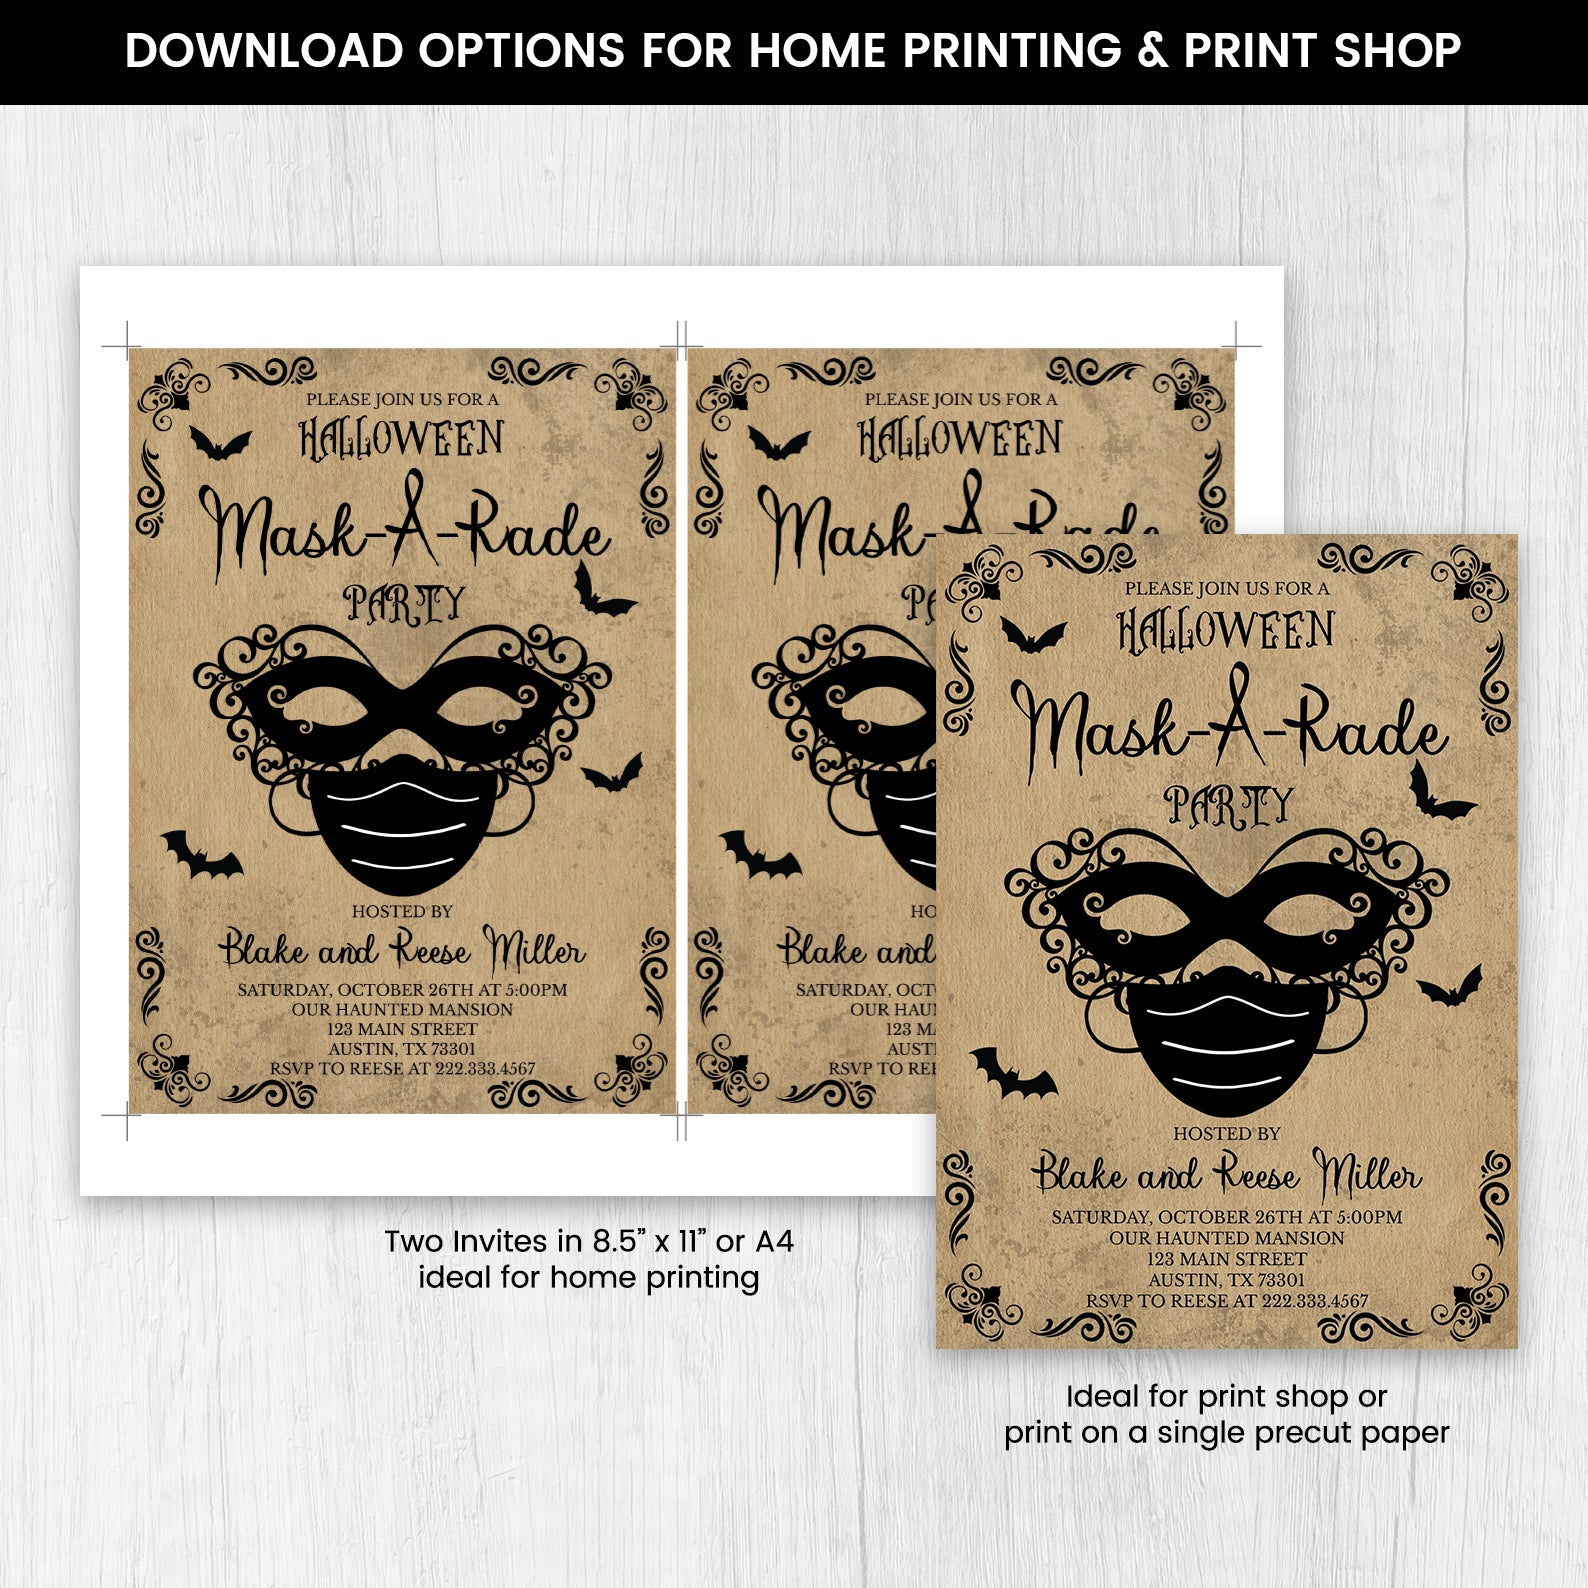 Editable Halloween Masquerade Party, Halloween Mask-a-rade Party, Medical Mask Invitation, Halloween Mask Invitation, Spooky Invite